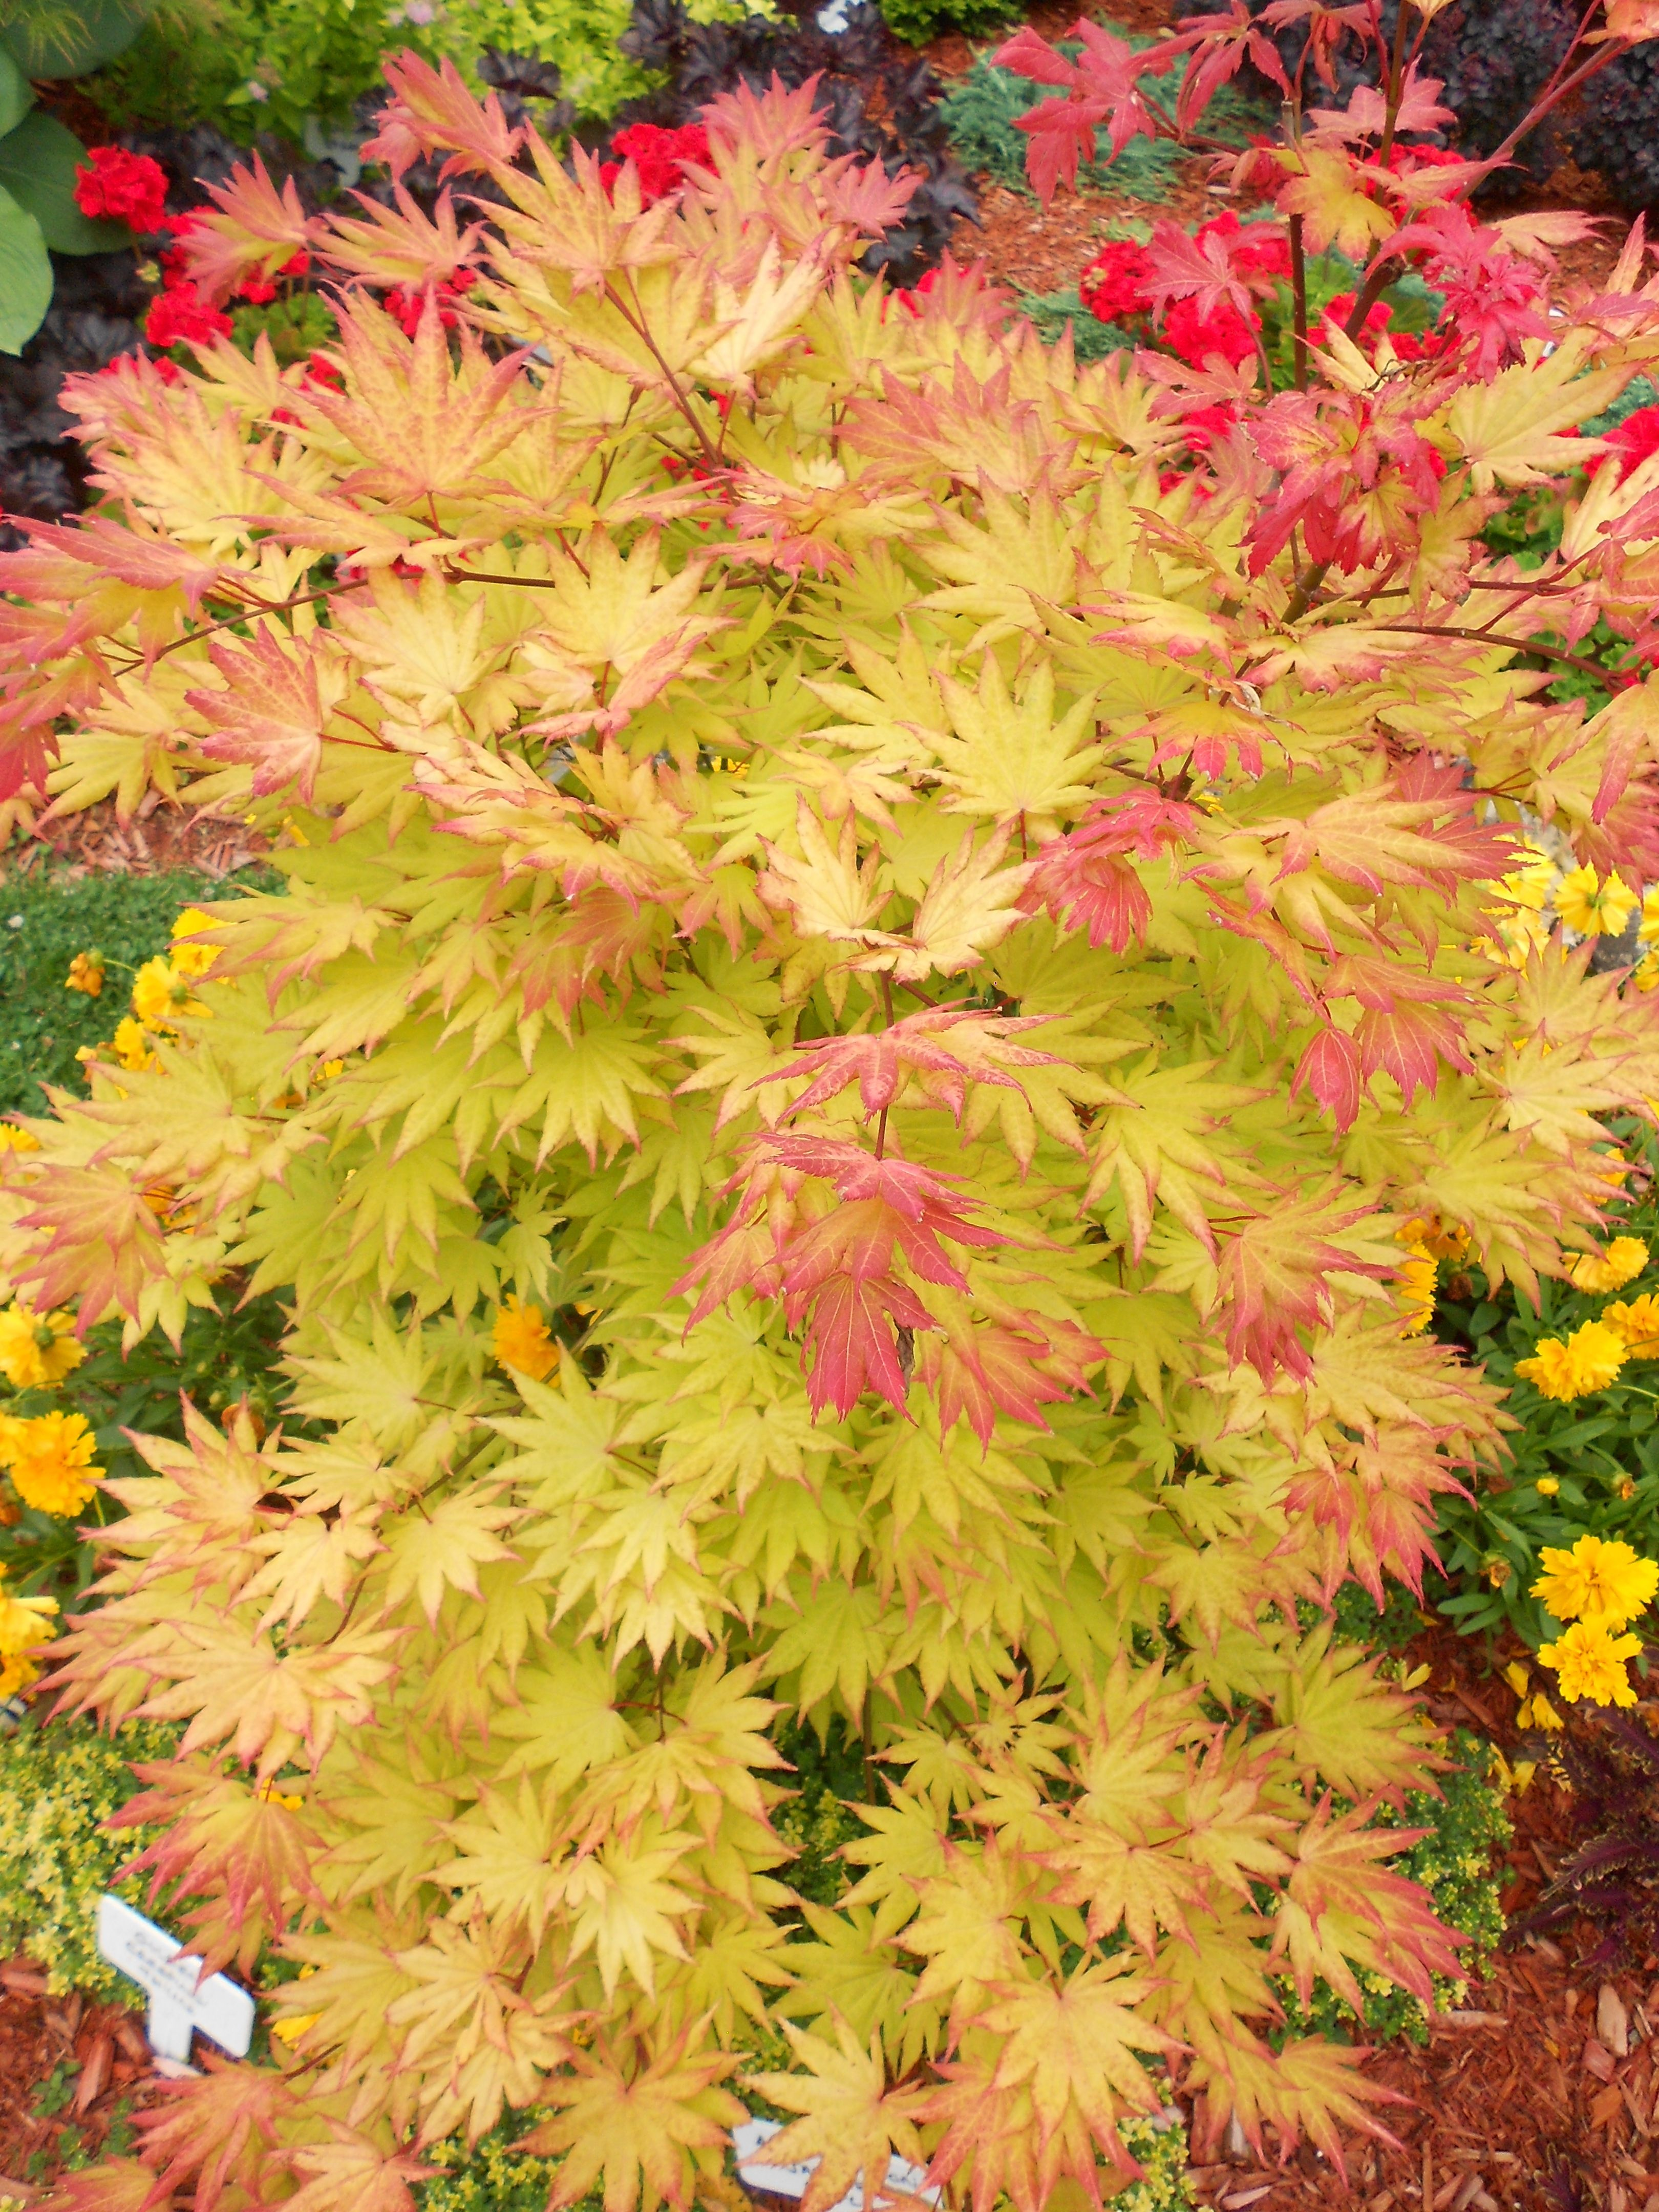 autumn moon japanese maple 1 25m by 1 25m orange yellow in